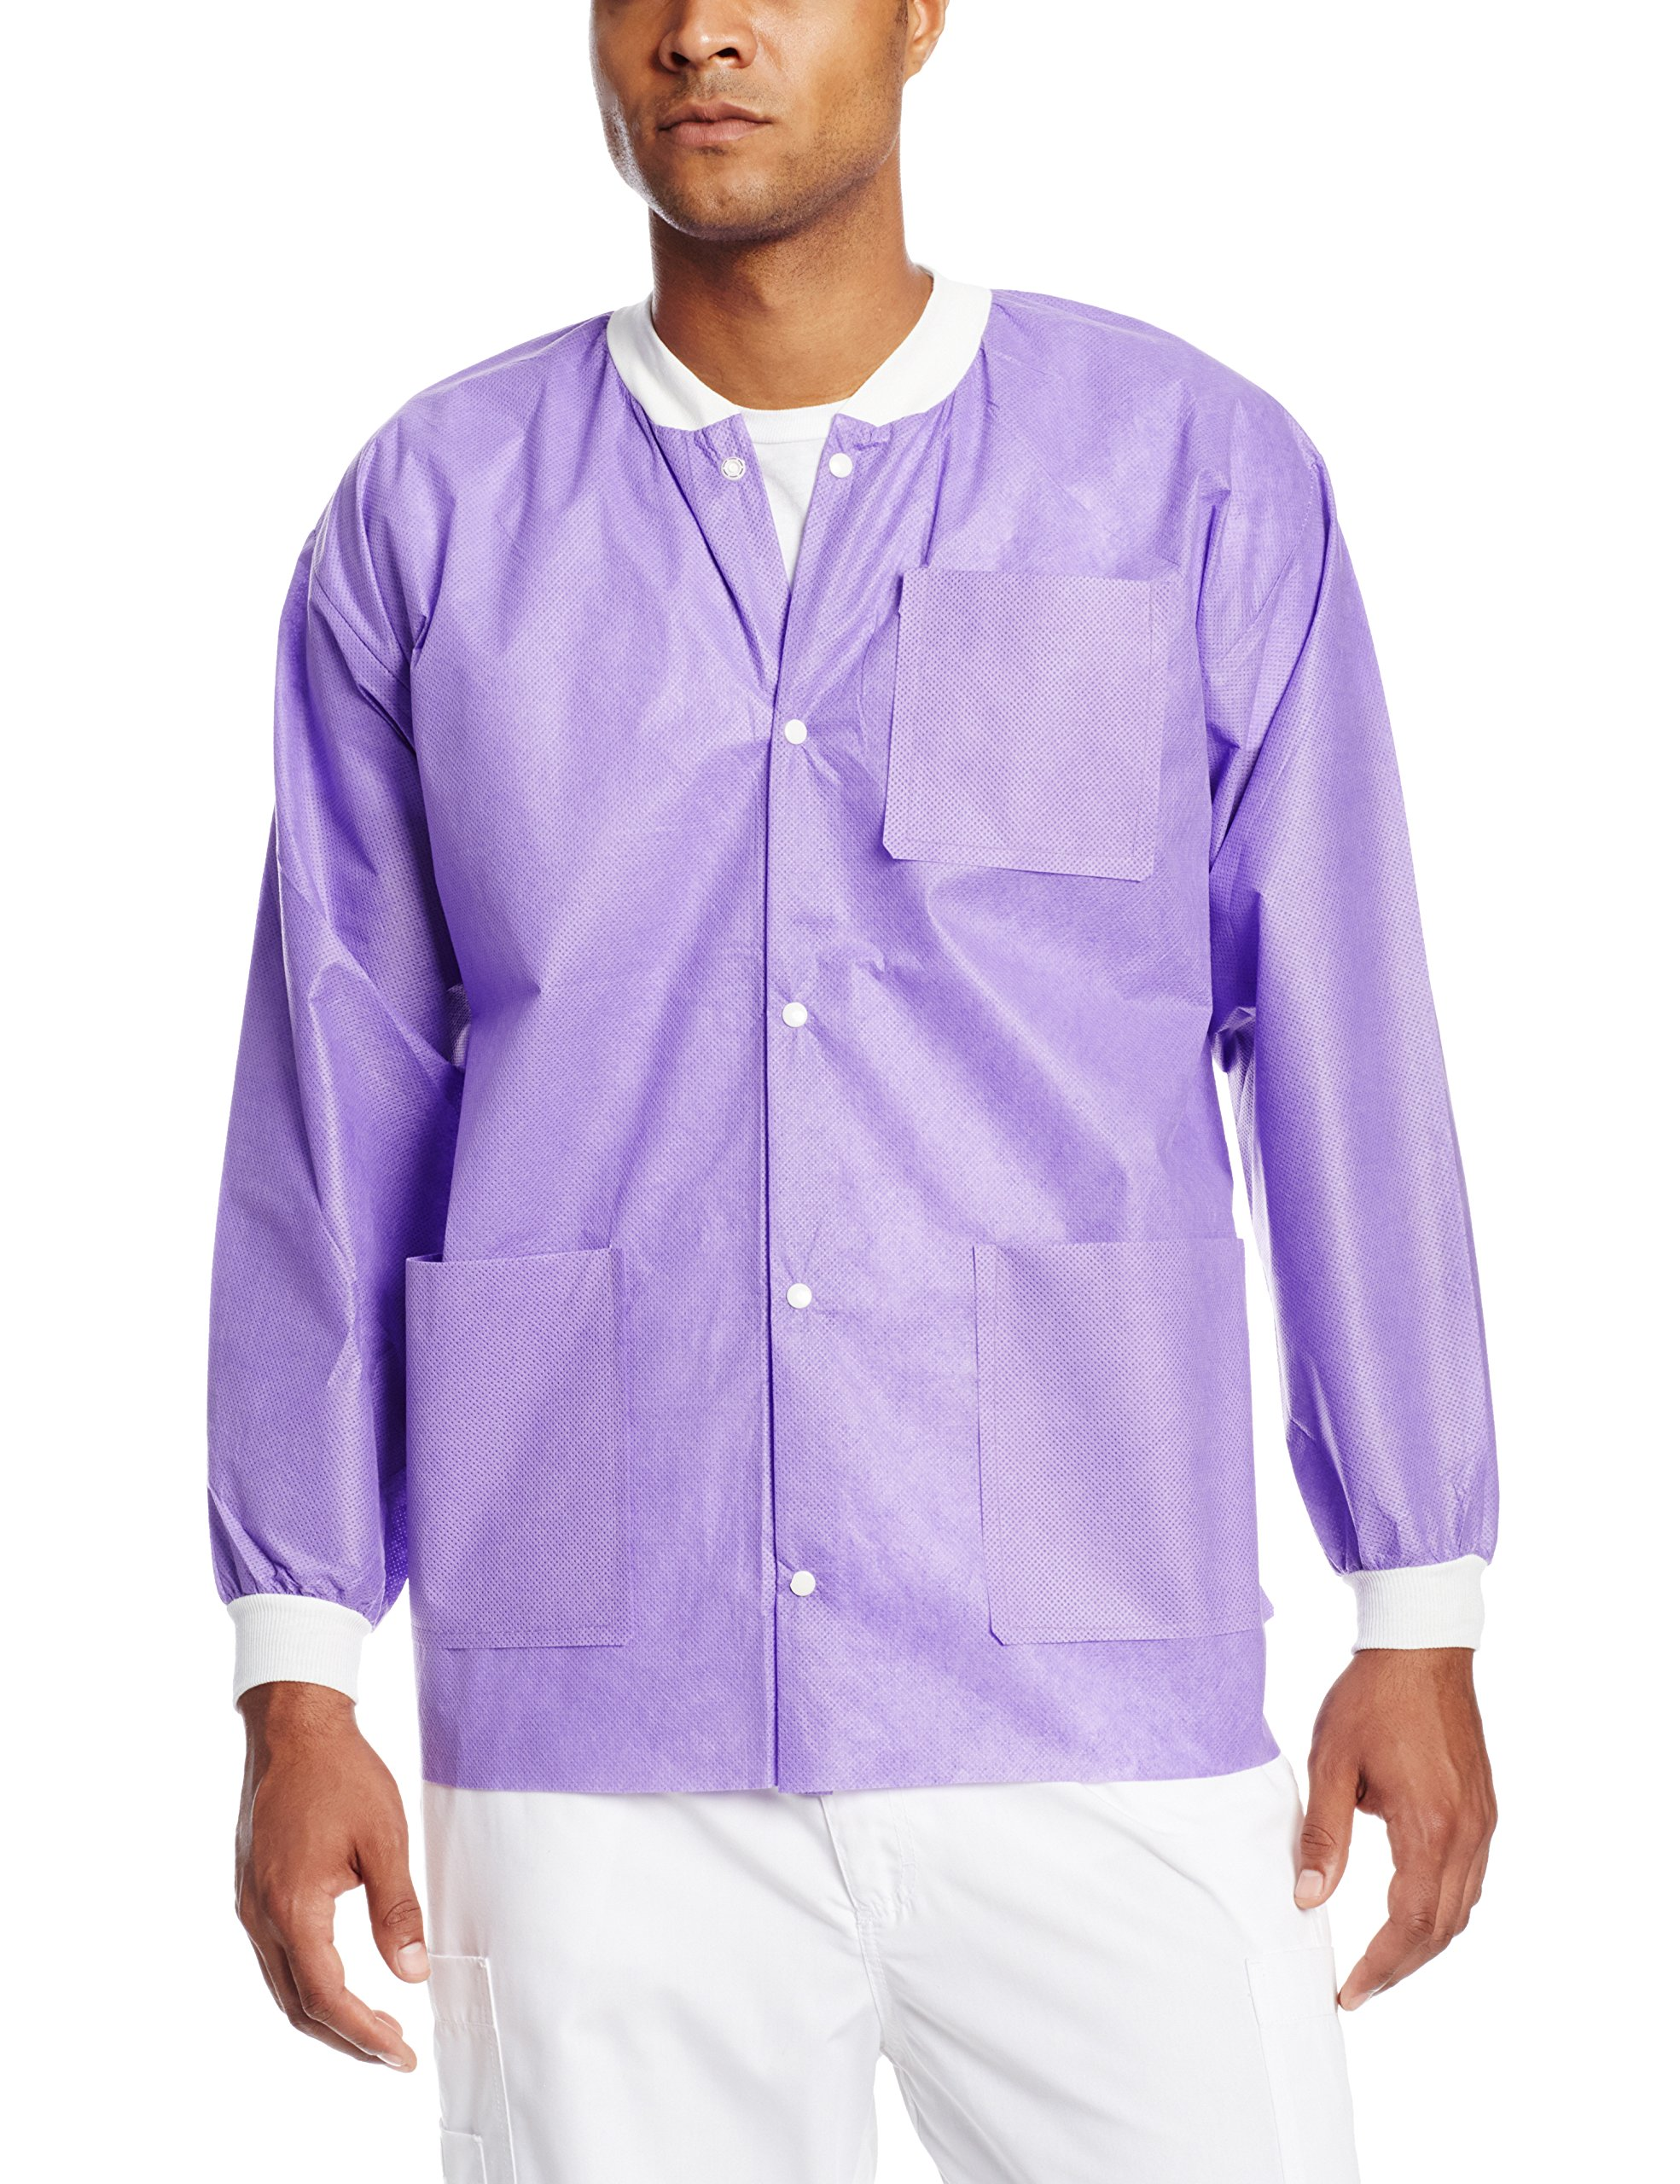 ValuMax 3630PPS Extra-Safe, Wrinkle-Free, Noble Looking Disposable SMS Hip Length Jacket, Purple, S, Pack of 10